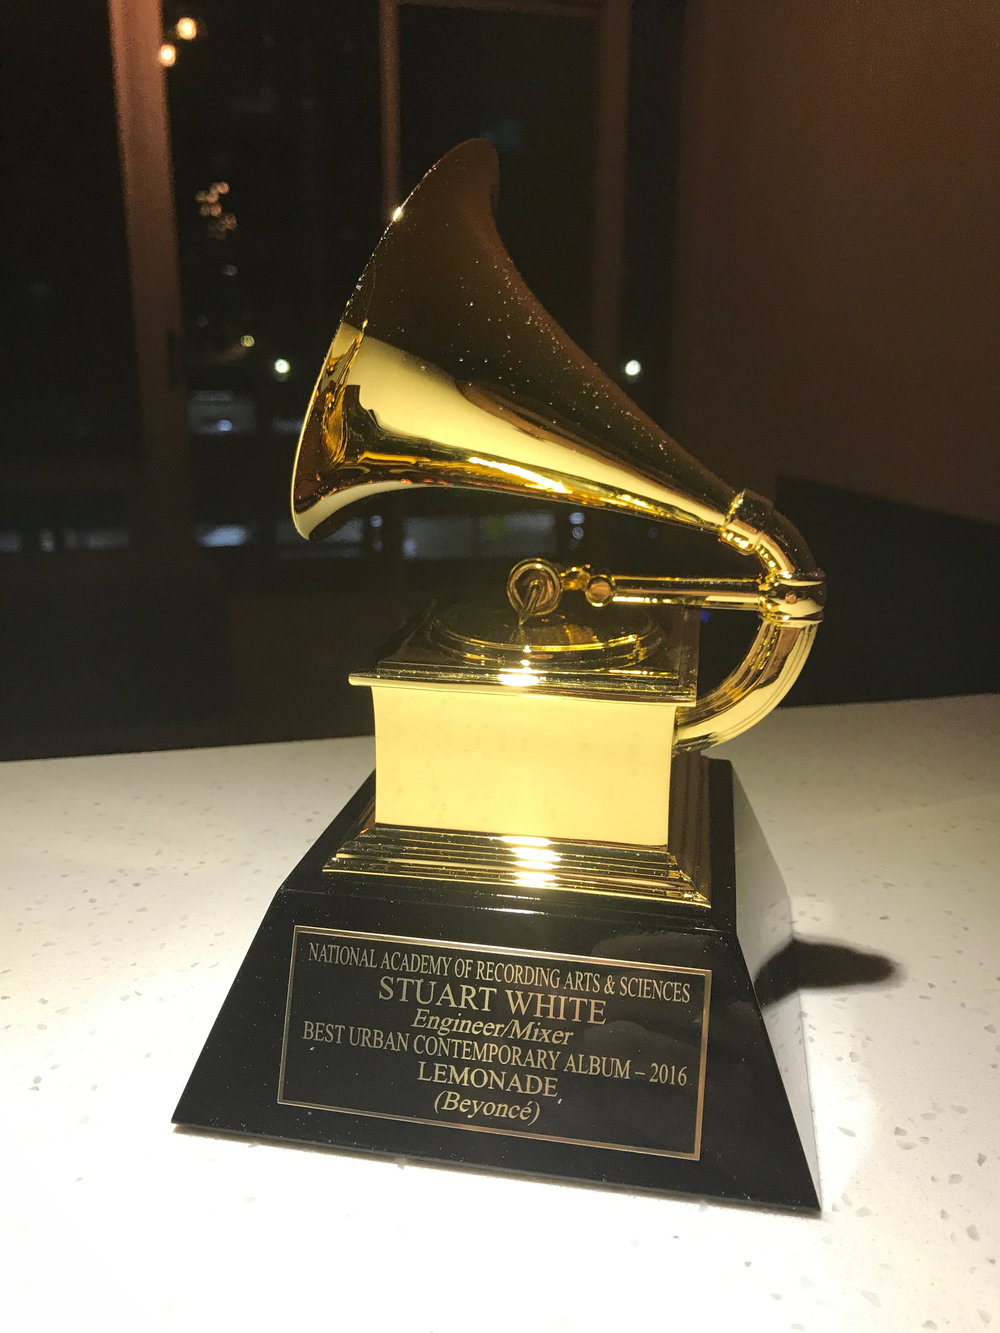 Stuart winning a grammy - for Best Urban Contemporary Art Albumfor his work as an Engineer/Mixer on Lemonade in 2016